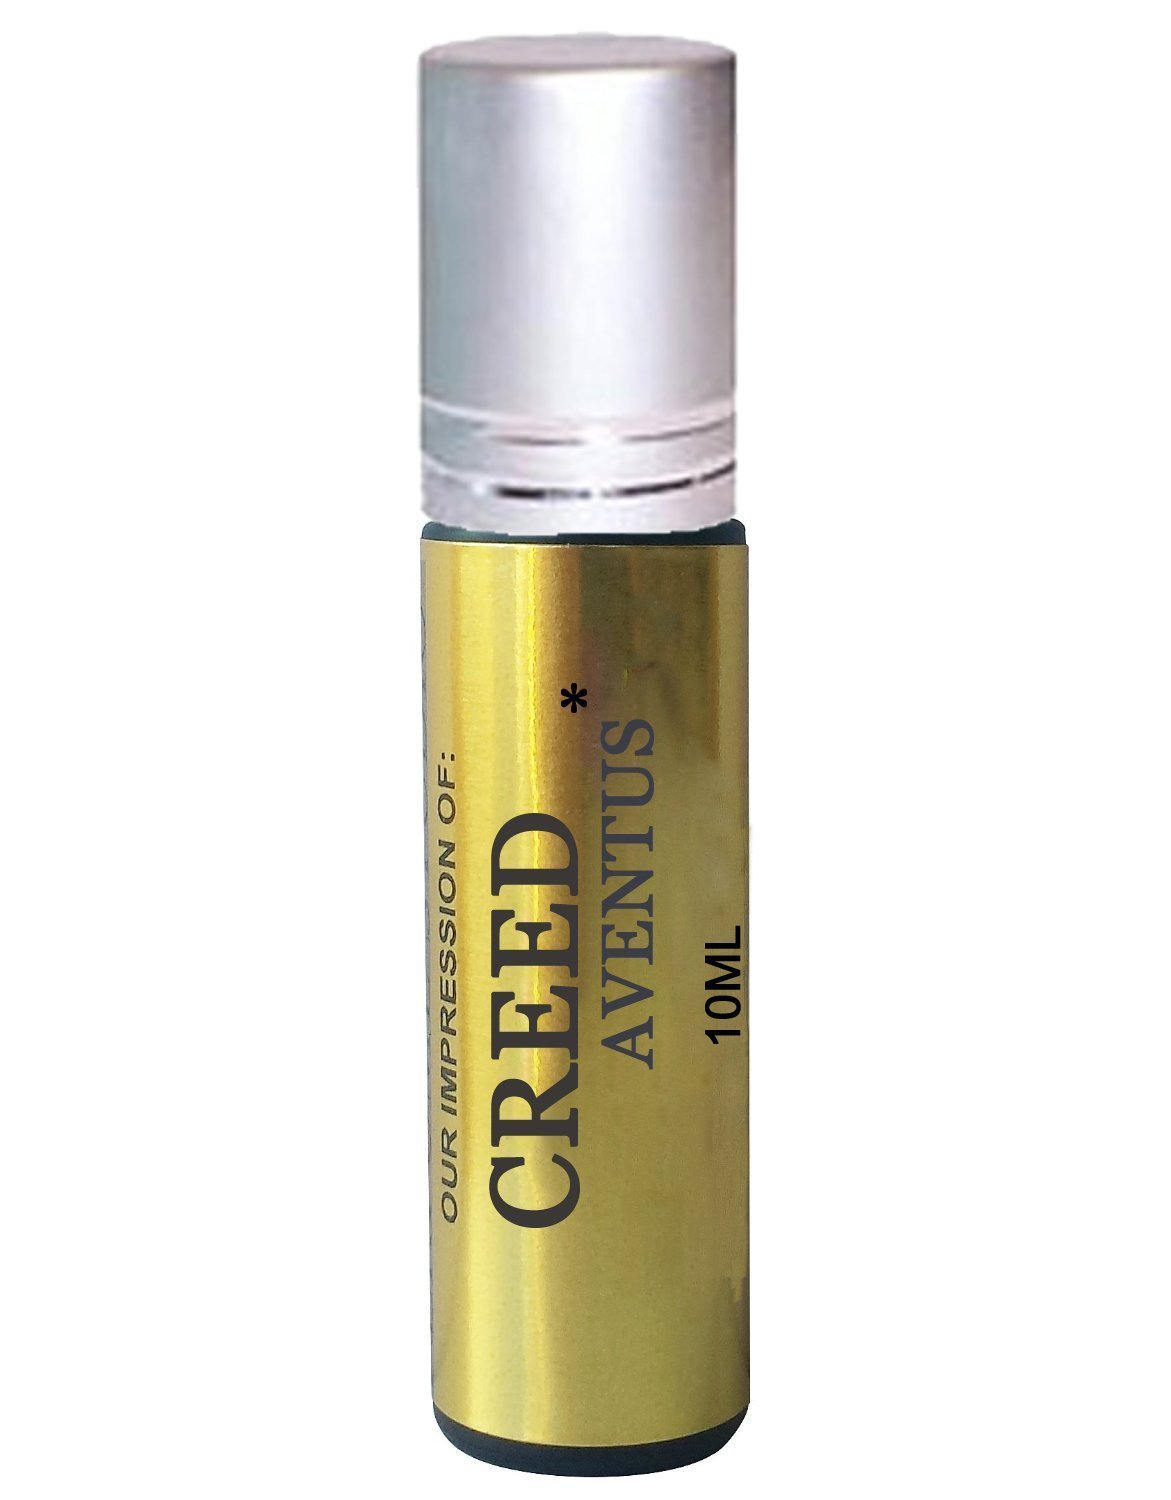 Creed Aventus Oil IMPRESSION with Similar Notes to Original Fragrance. Our Premium VERSION Scent; Not Original Brand; 10ml Roll On Bottle (Perfume Studio Oil Blend CF-102).